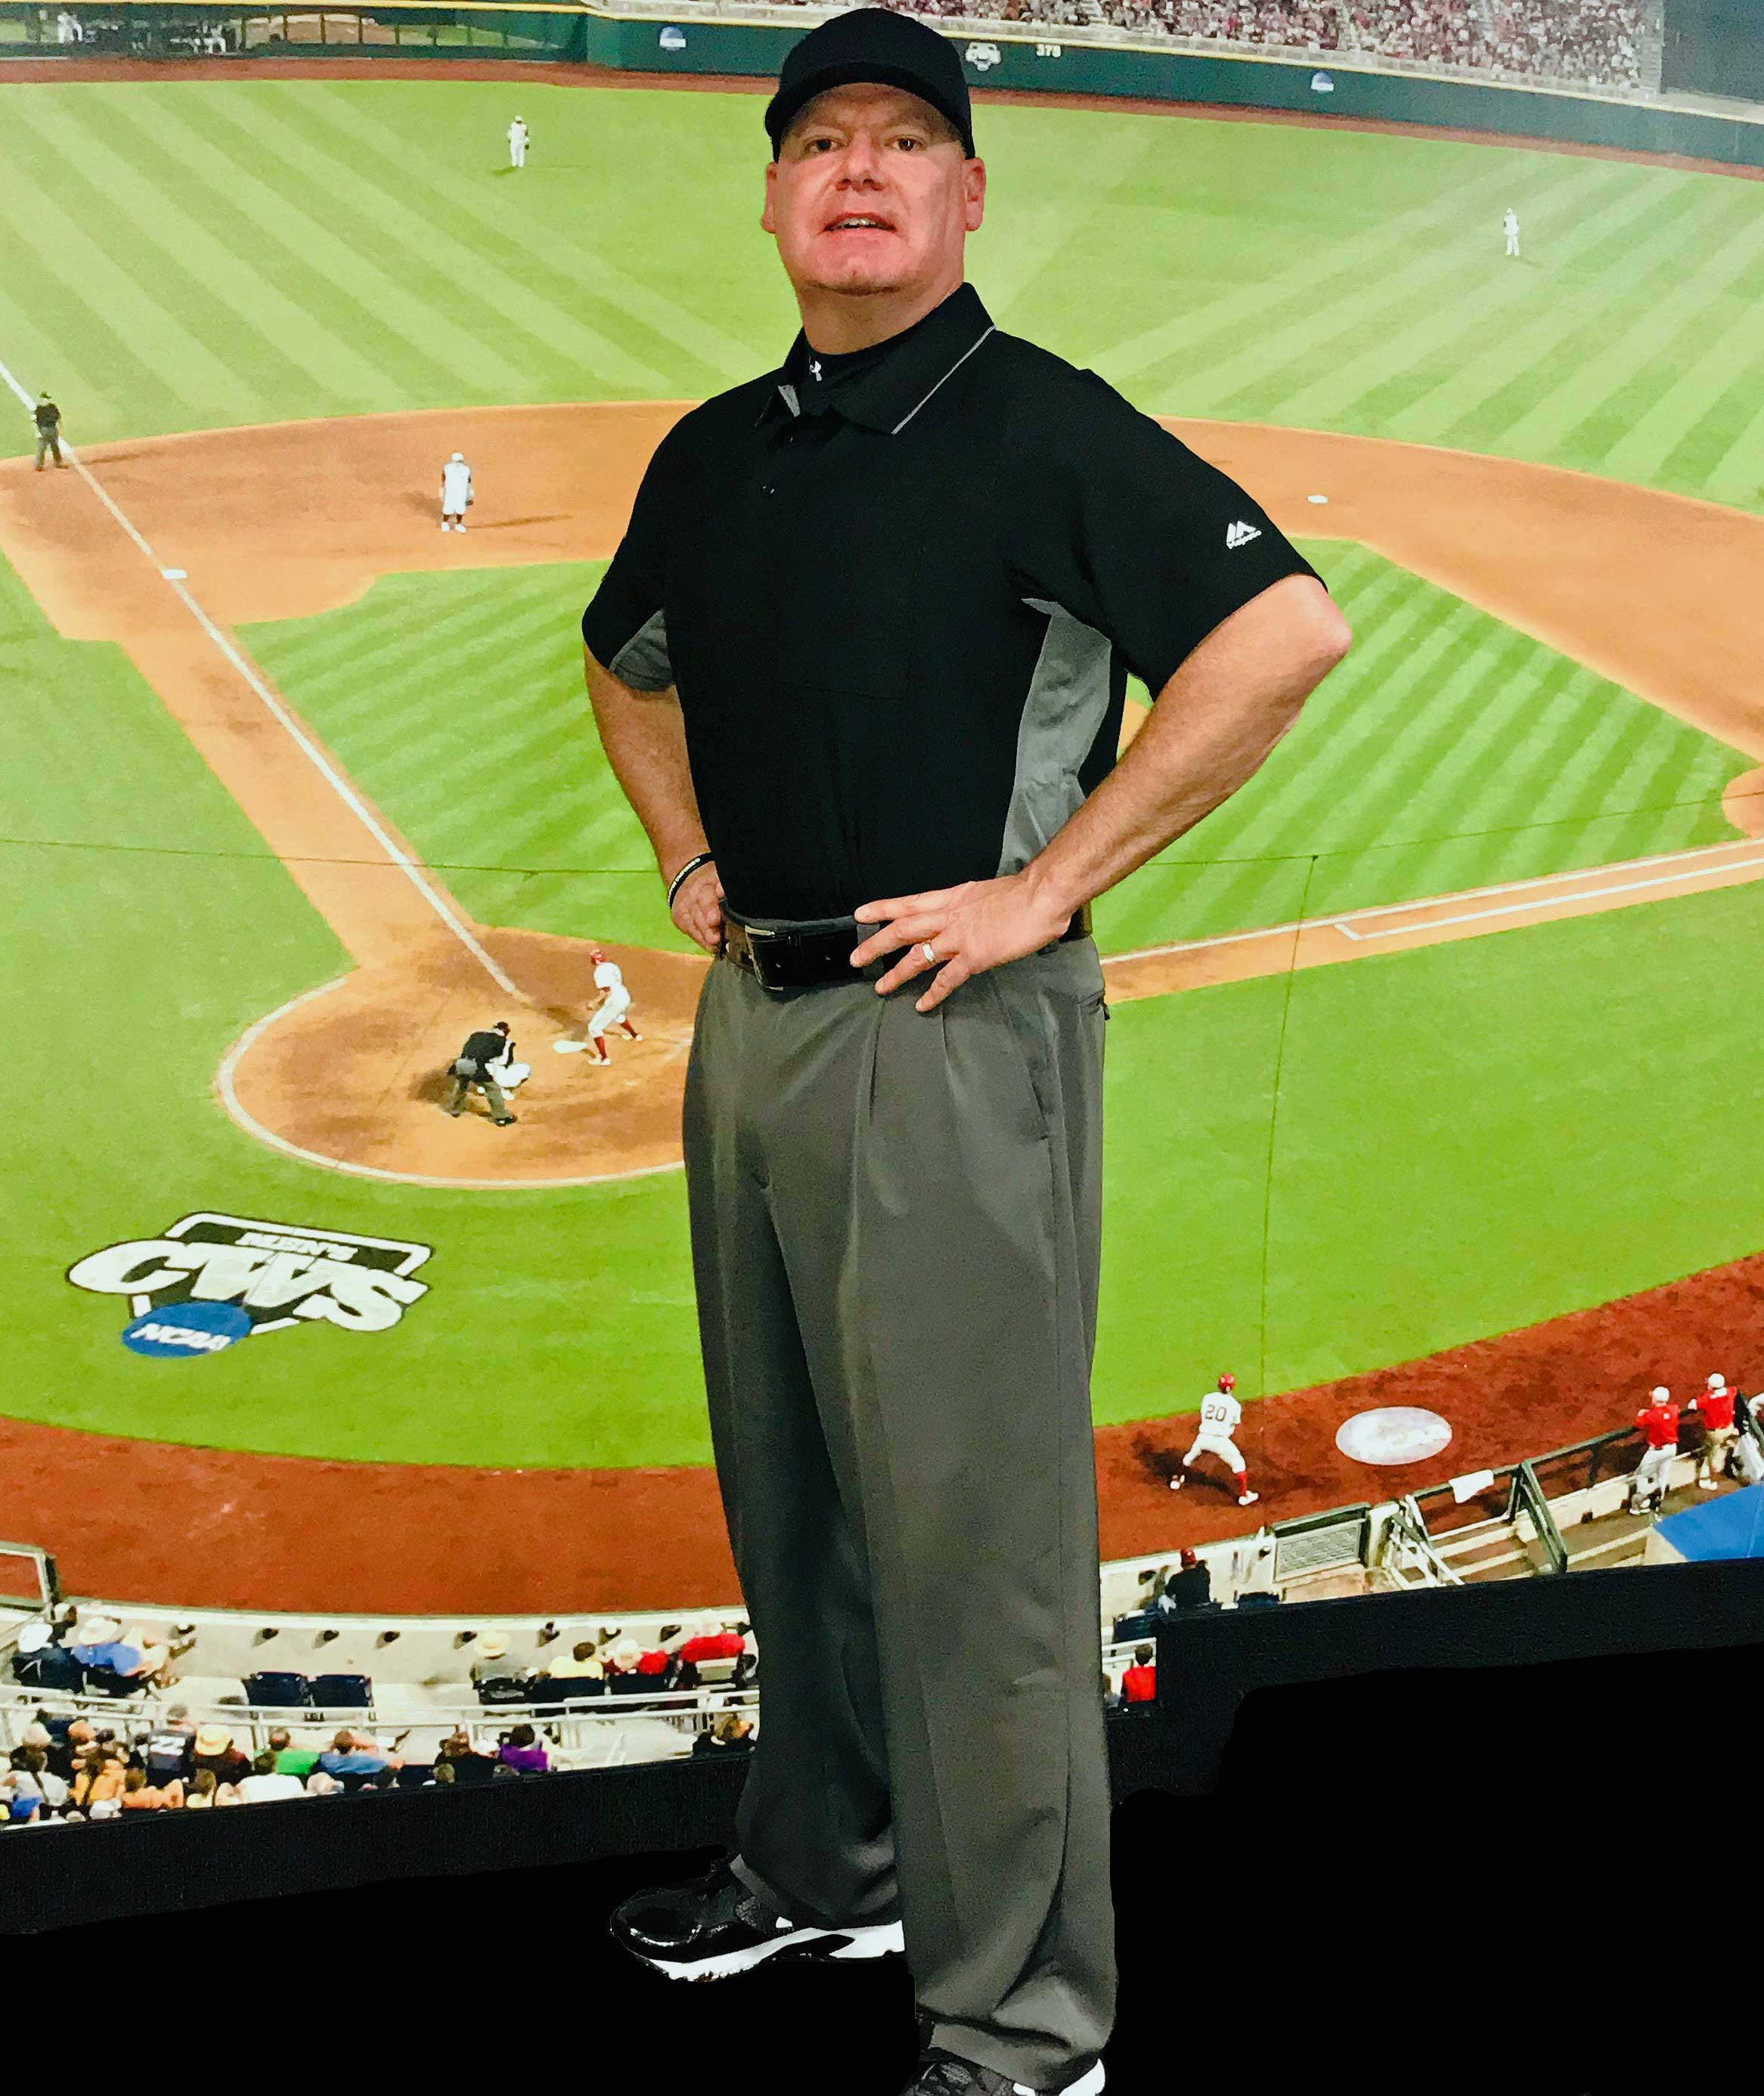 Scott Kennedy in Full Umpire Uniform